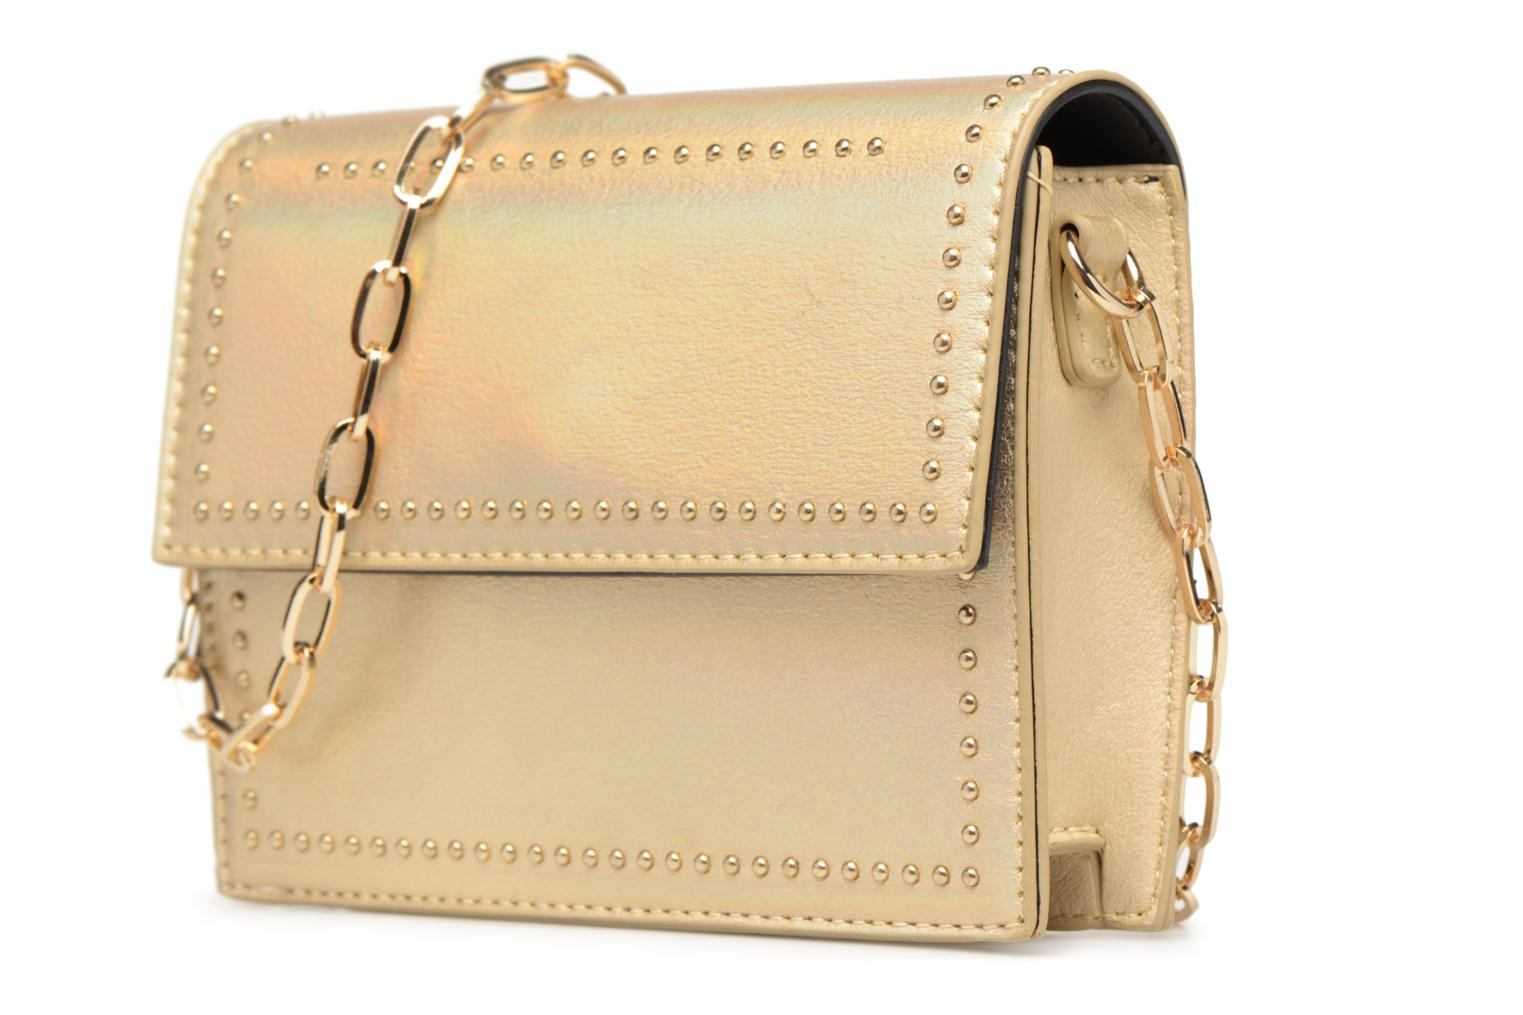 Gold Street Mettalic chainstrap crossbody Level wqpOp8xa